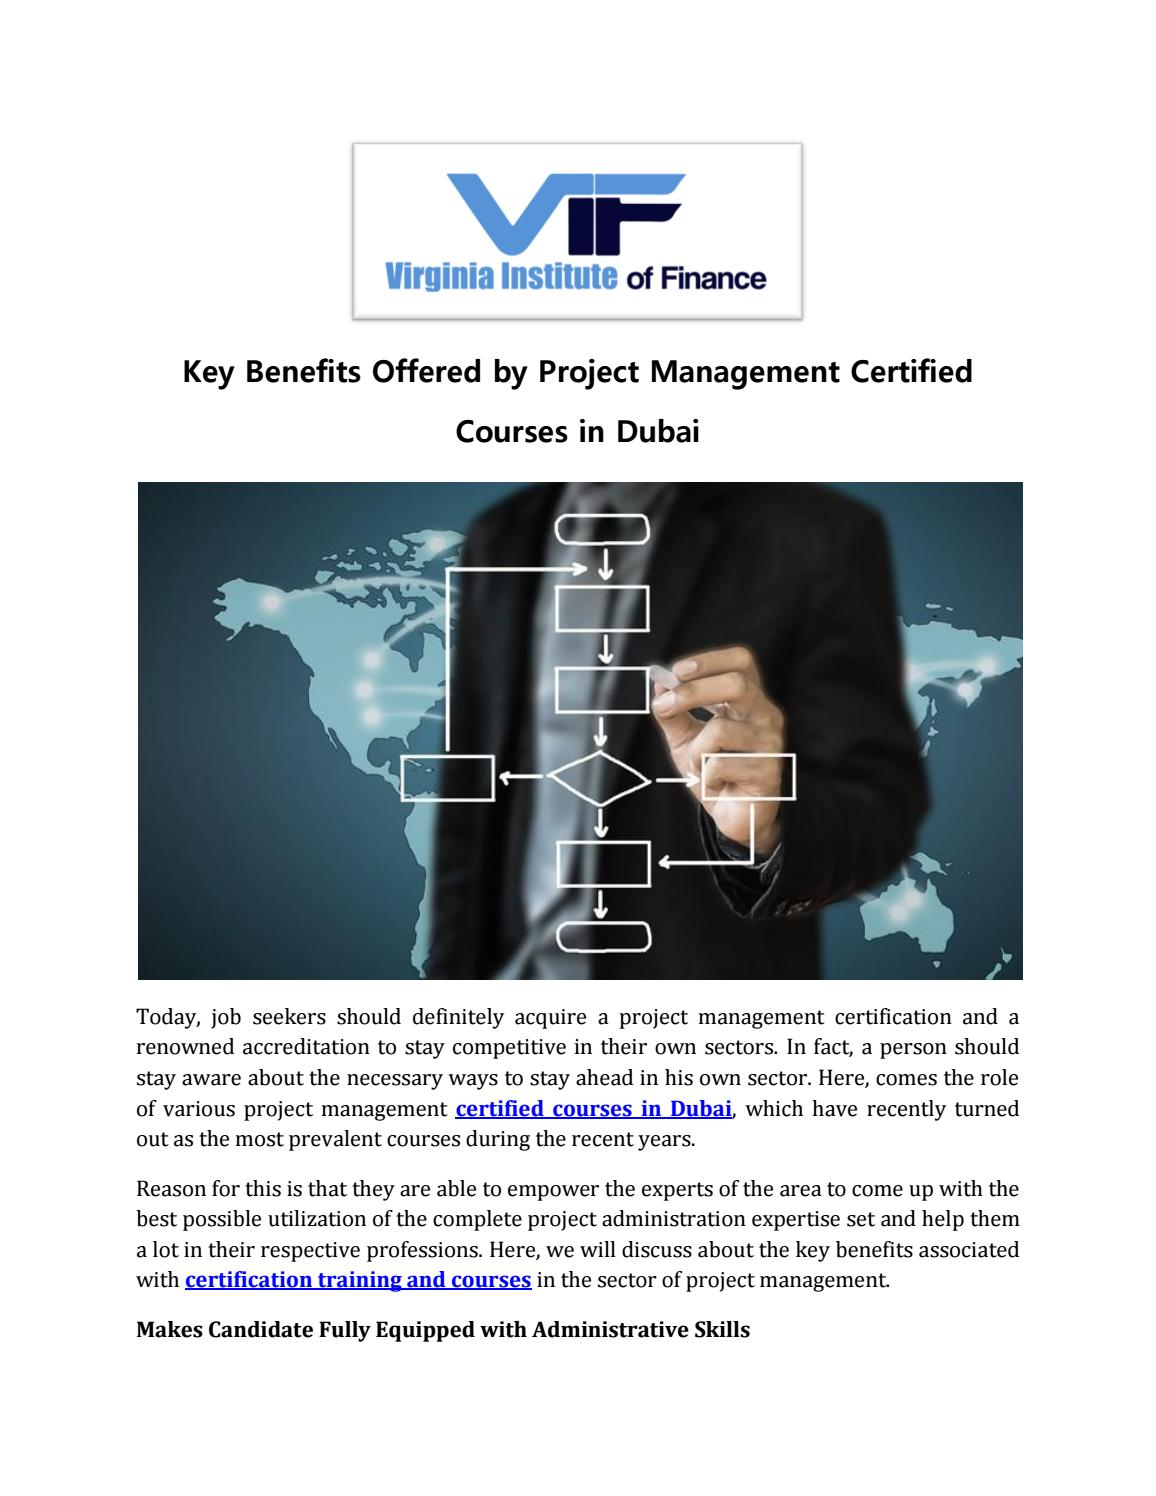 Key Benefits Offered By Project Management Certified Courses In